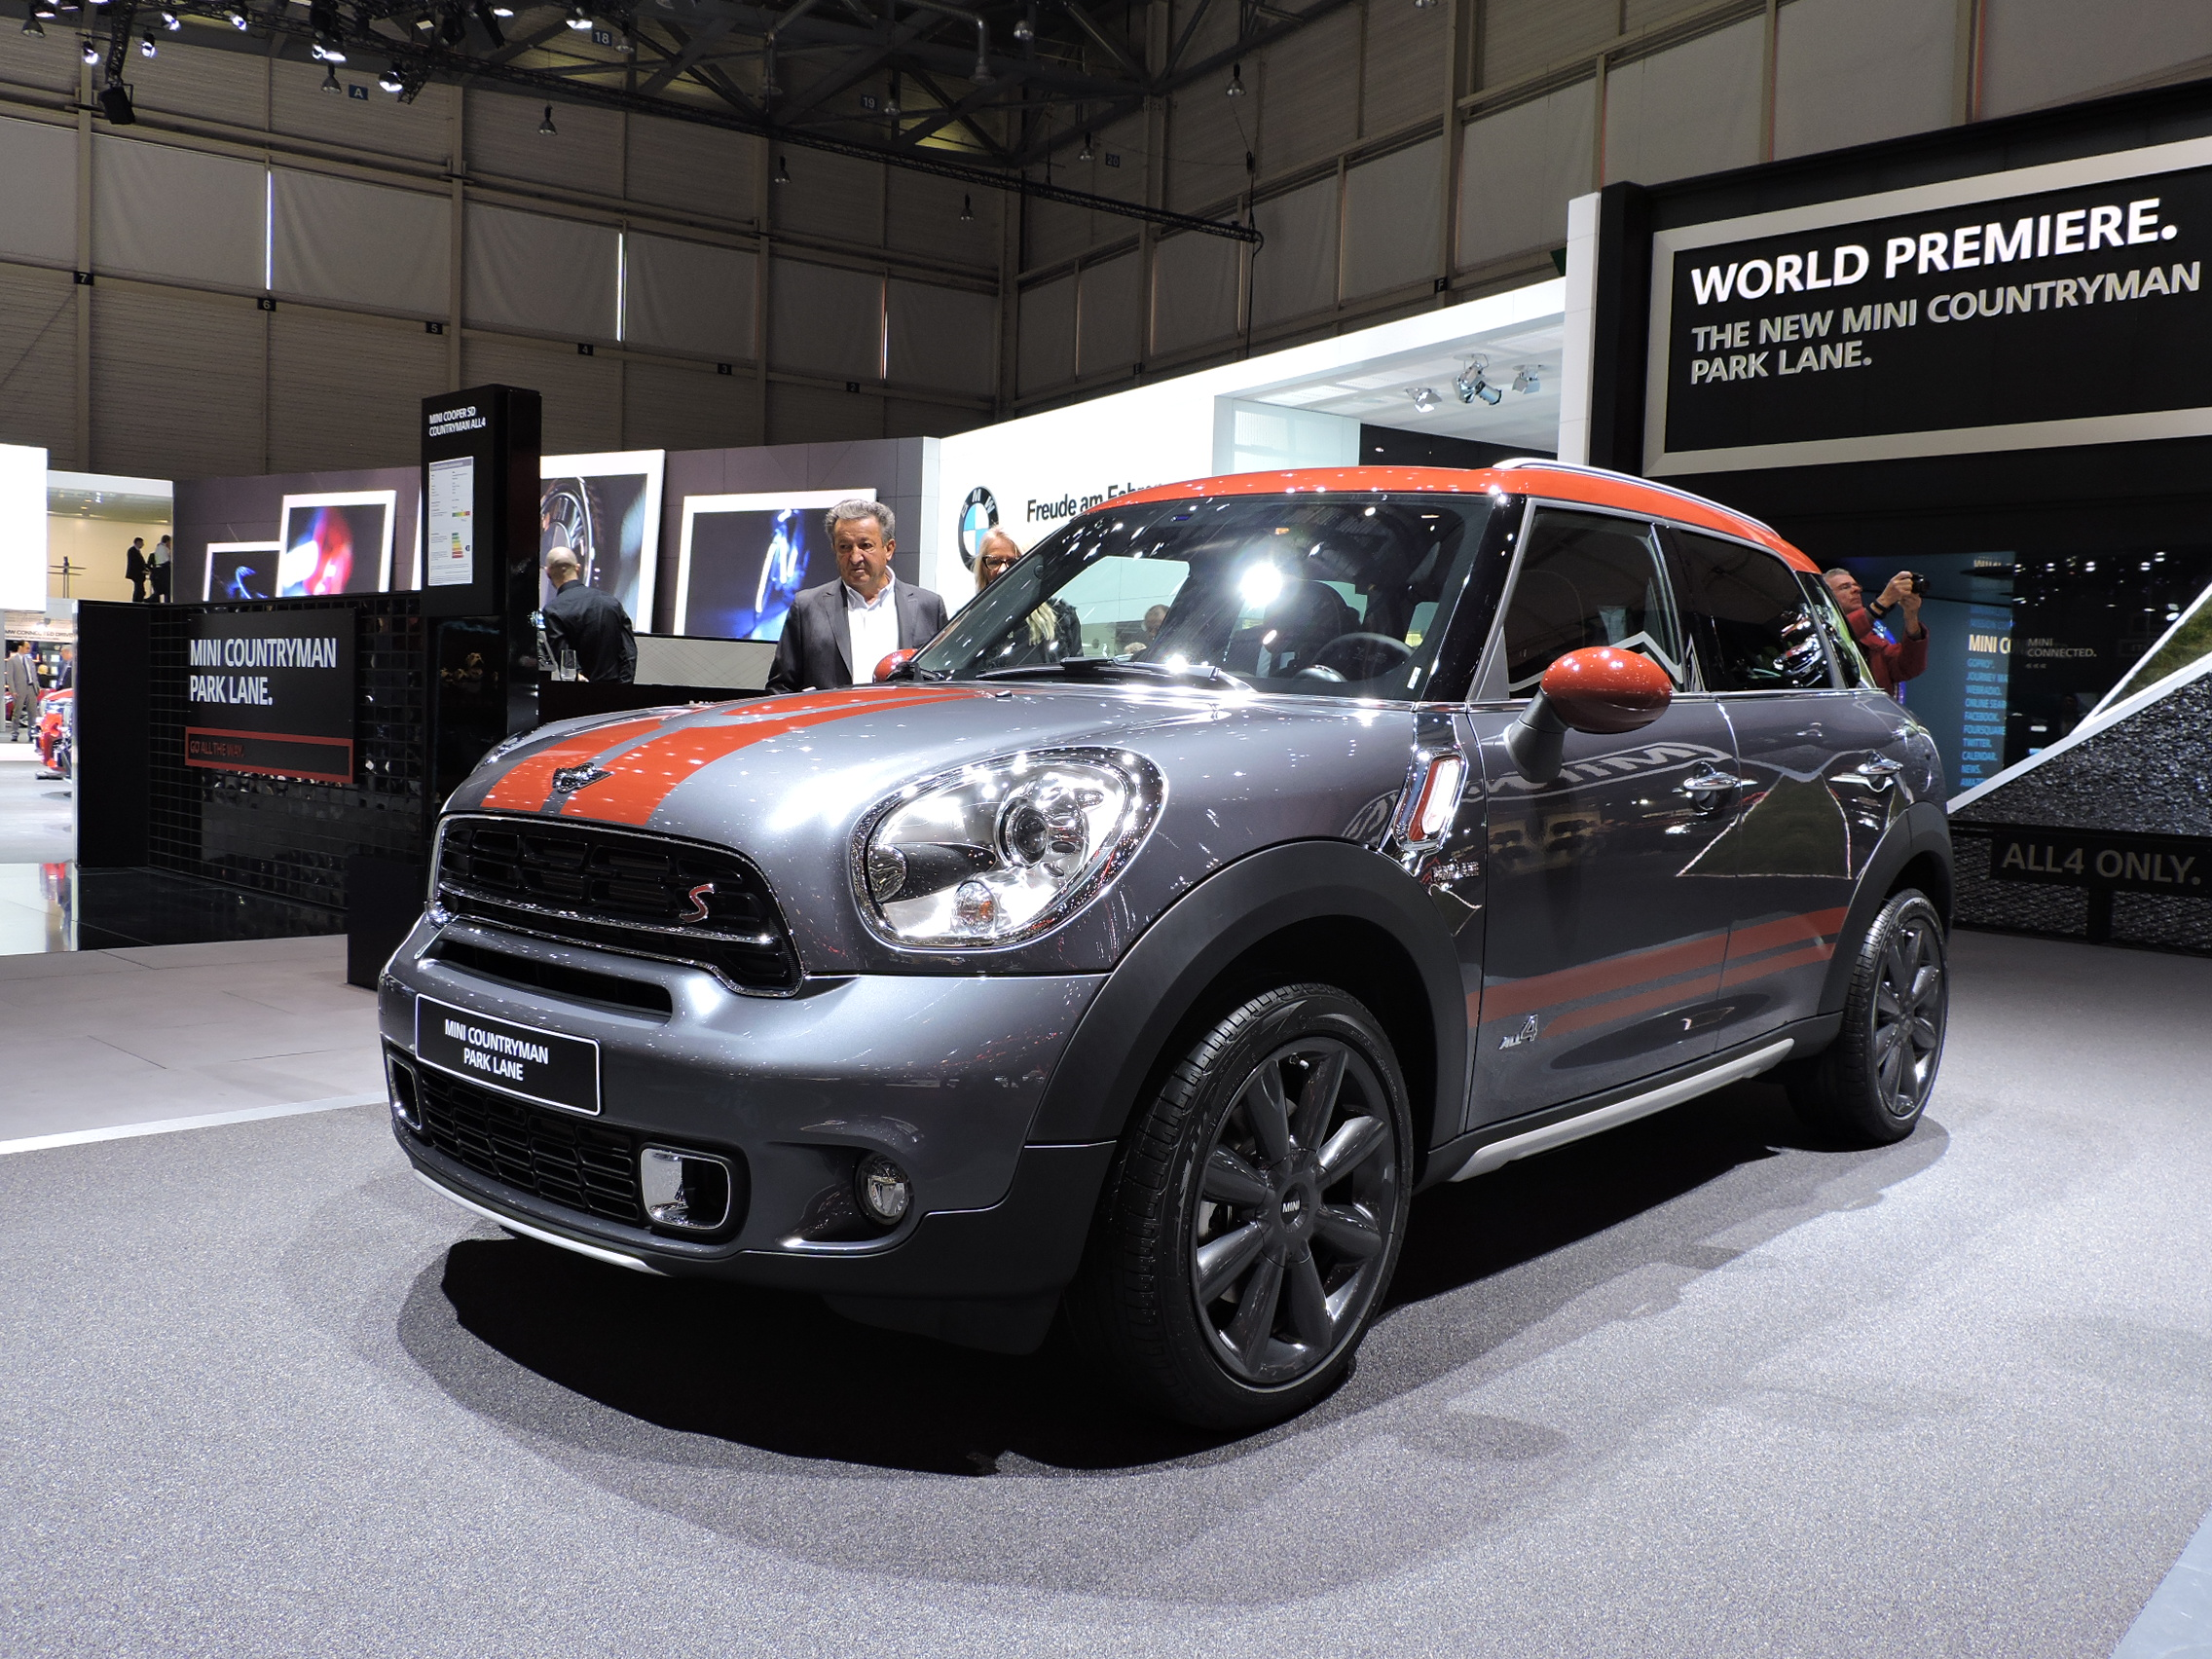 mini countryman park lane adds a touch of class